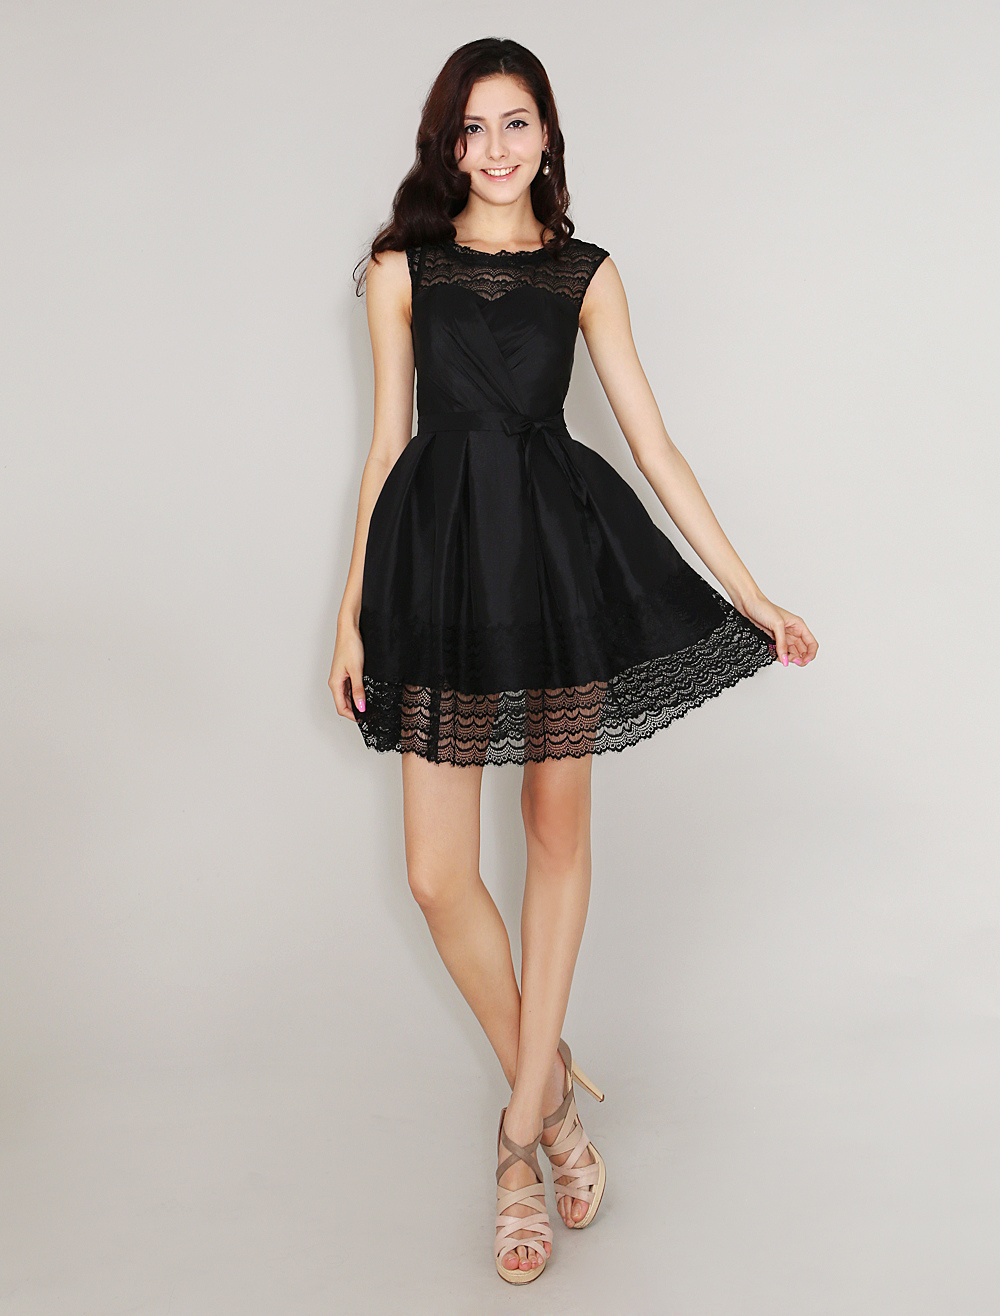 Buy Black A-line Pretty Short Cocktail Dress with Jewel Neck Bow Taffeta for $119.99 in Milanoo store